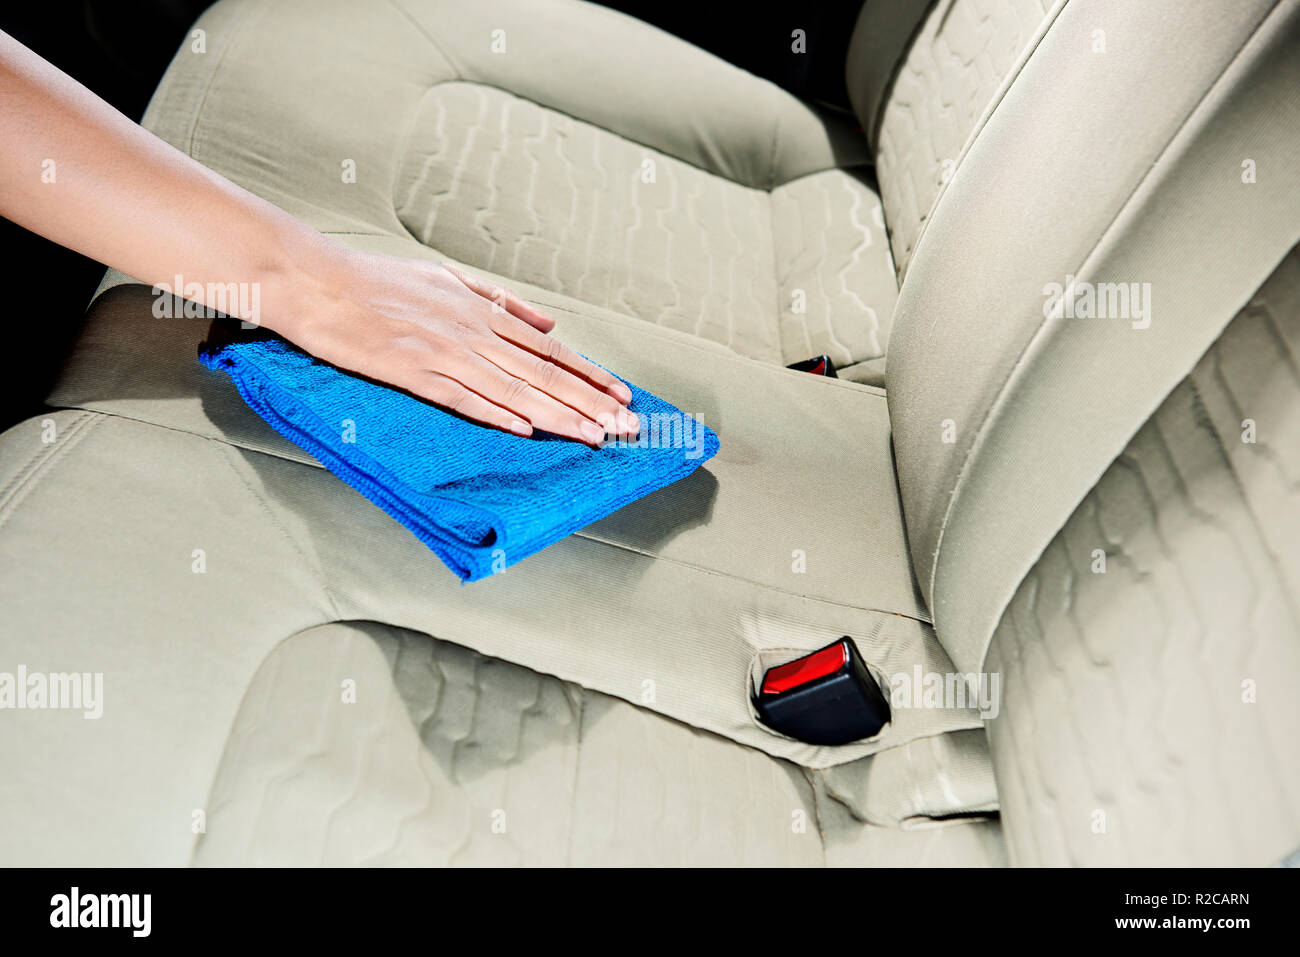 Hand Cleaning Car Interior With Rag Cloth At Home